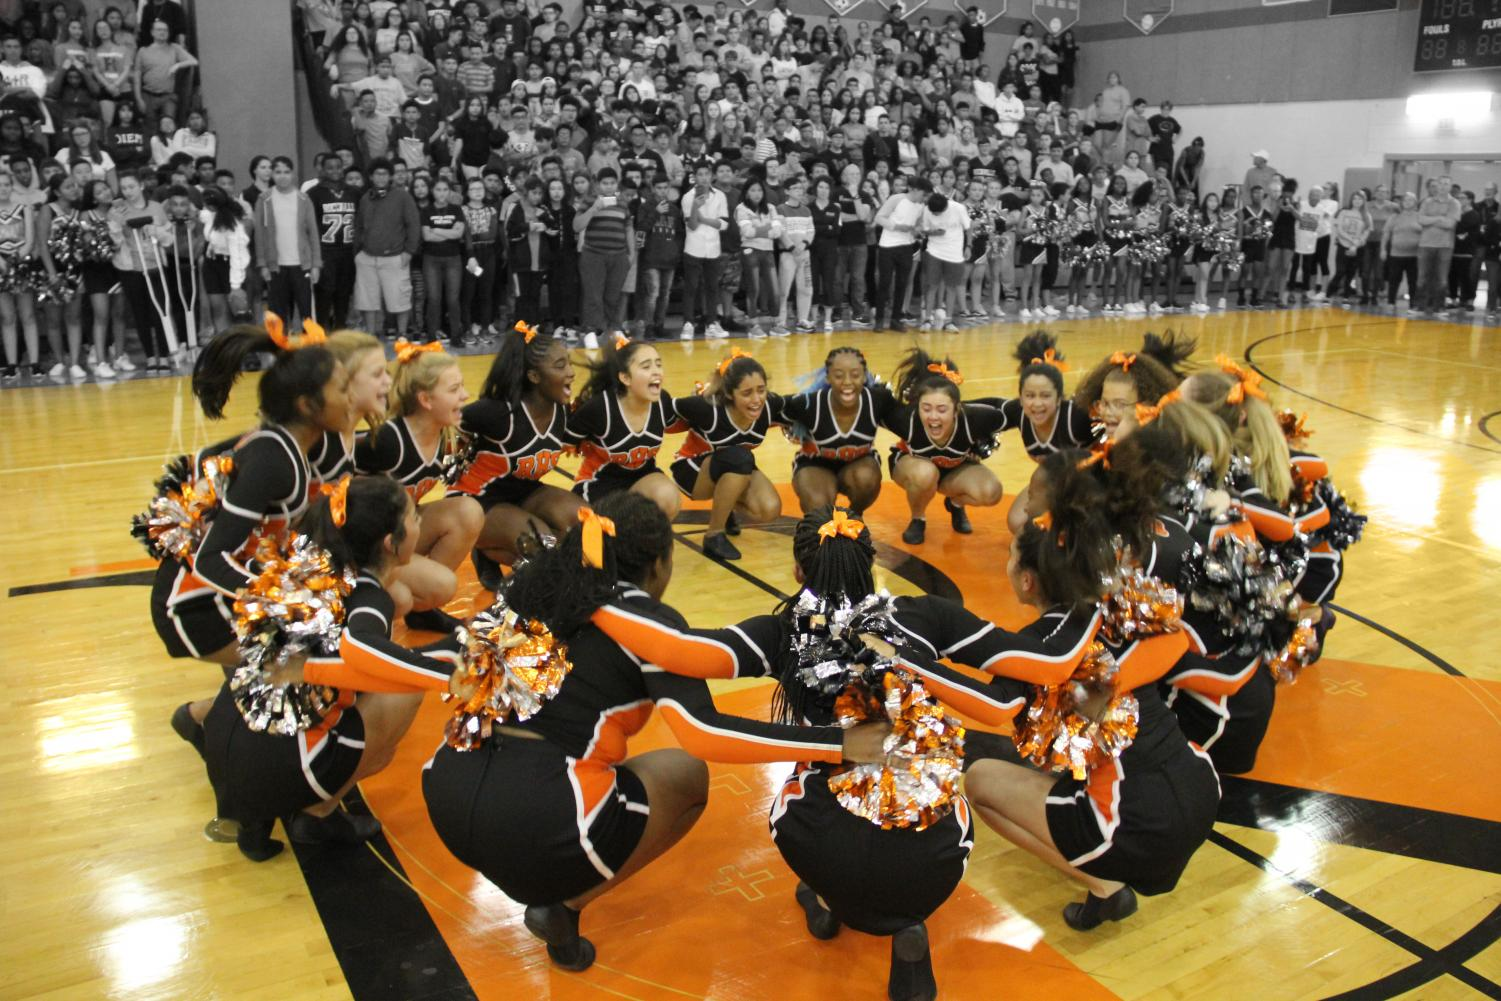 The+Poms+team+prepare+themselves+for+their+first+performance+of+the+school+year.+